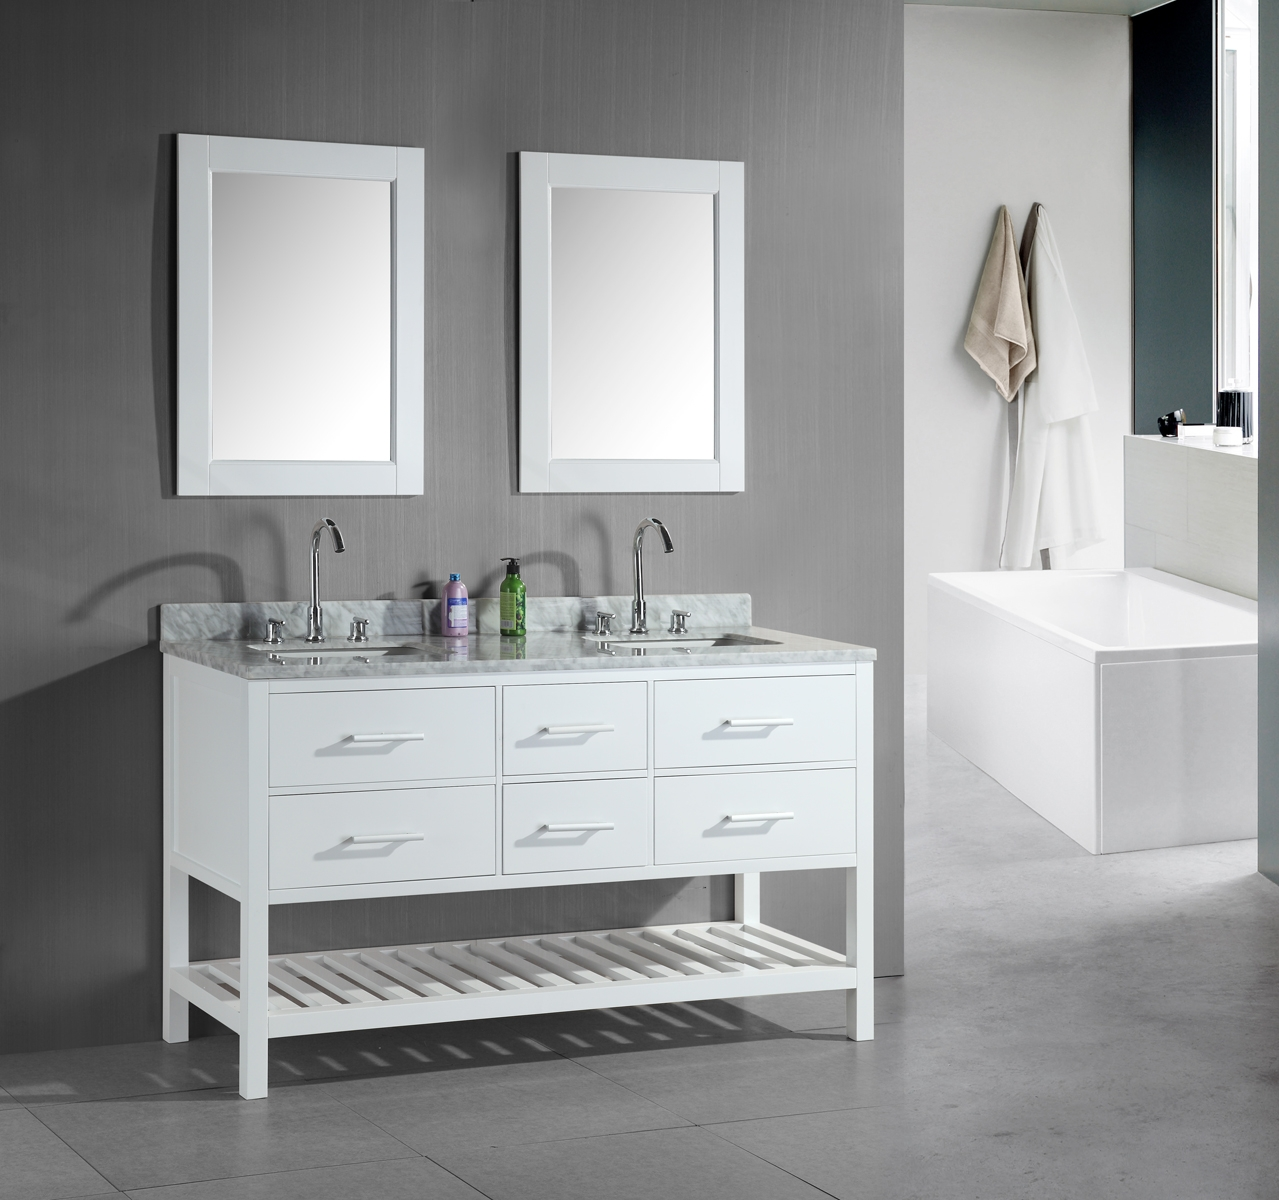 Permalink to Double Sink Vanities For Small Bathrooms